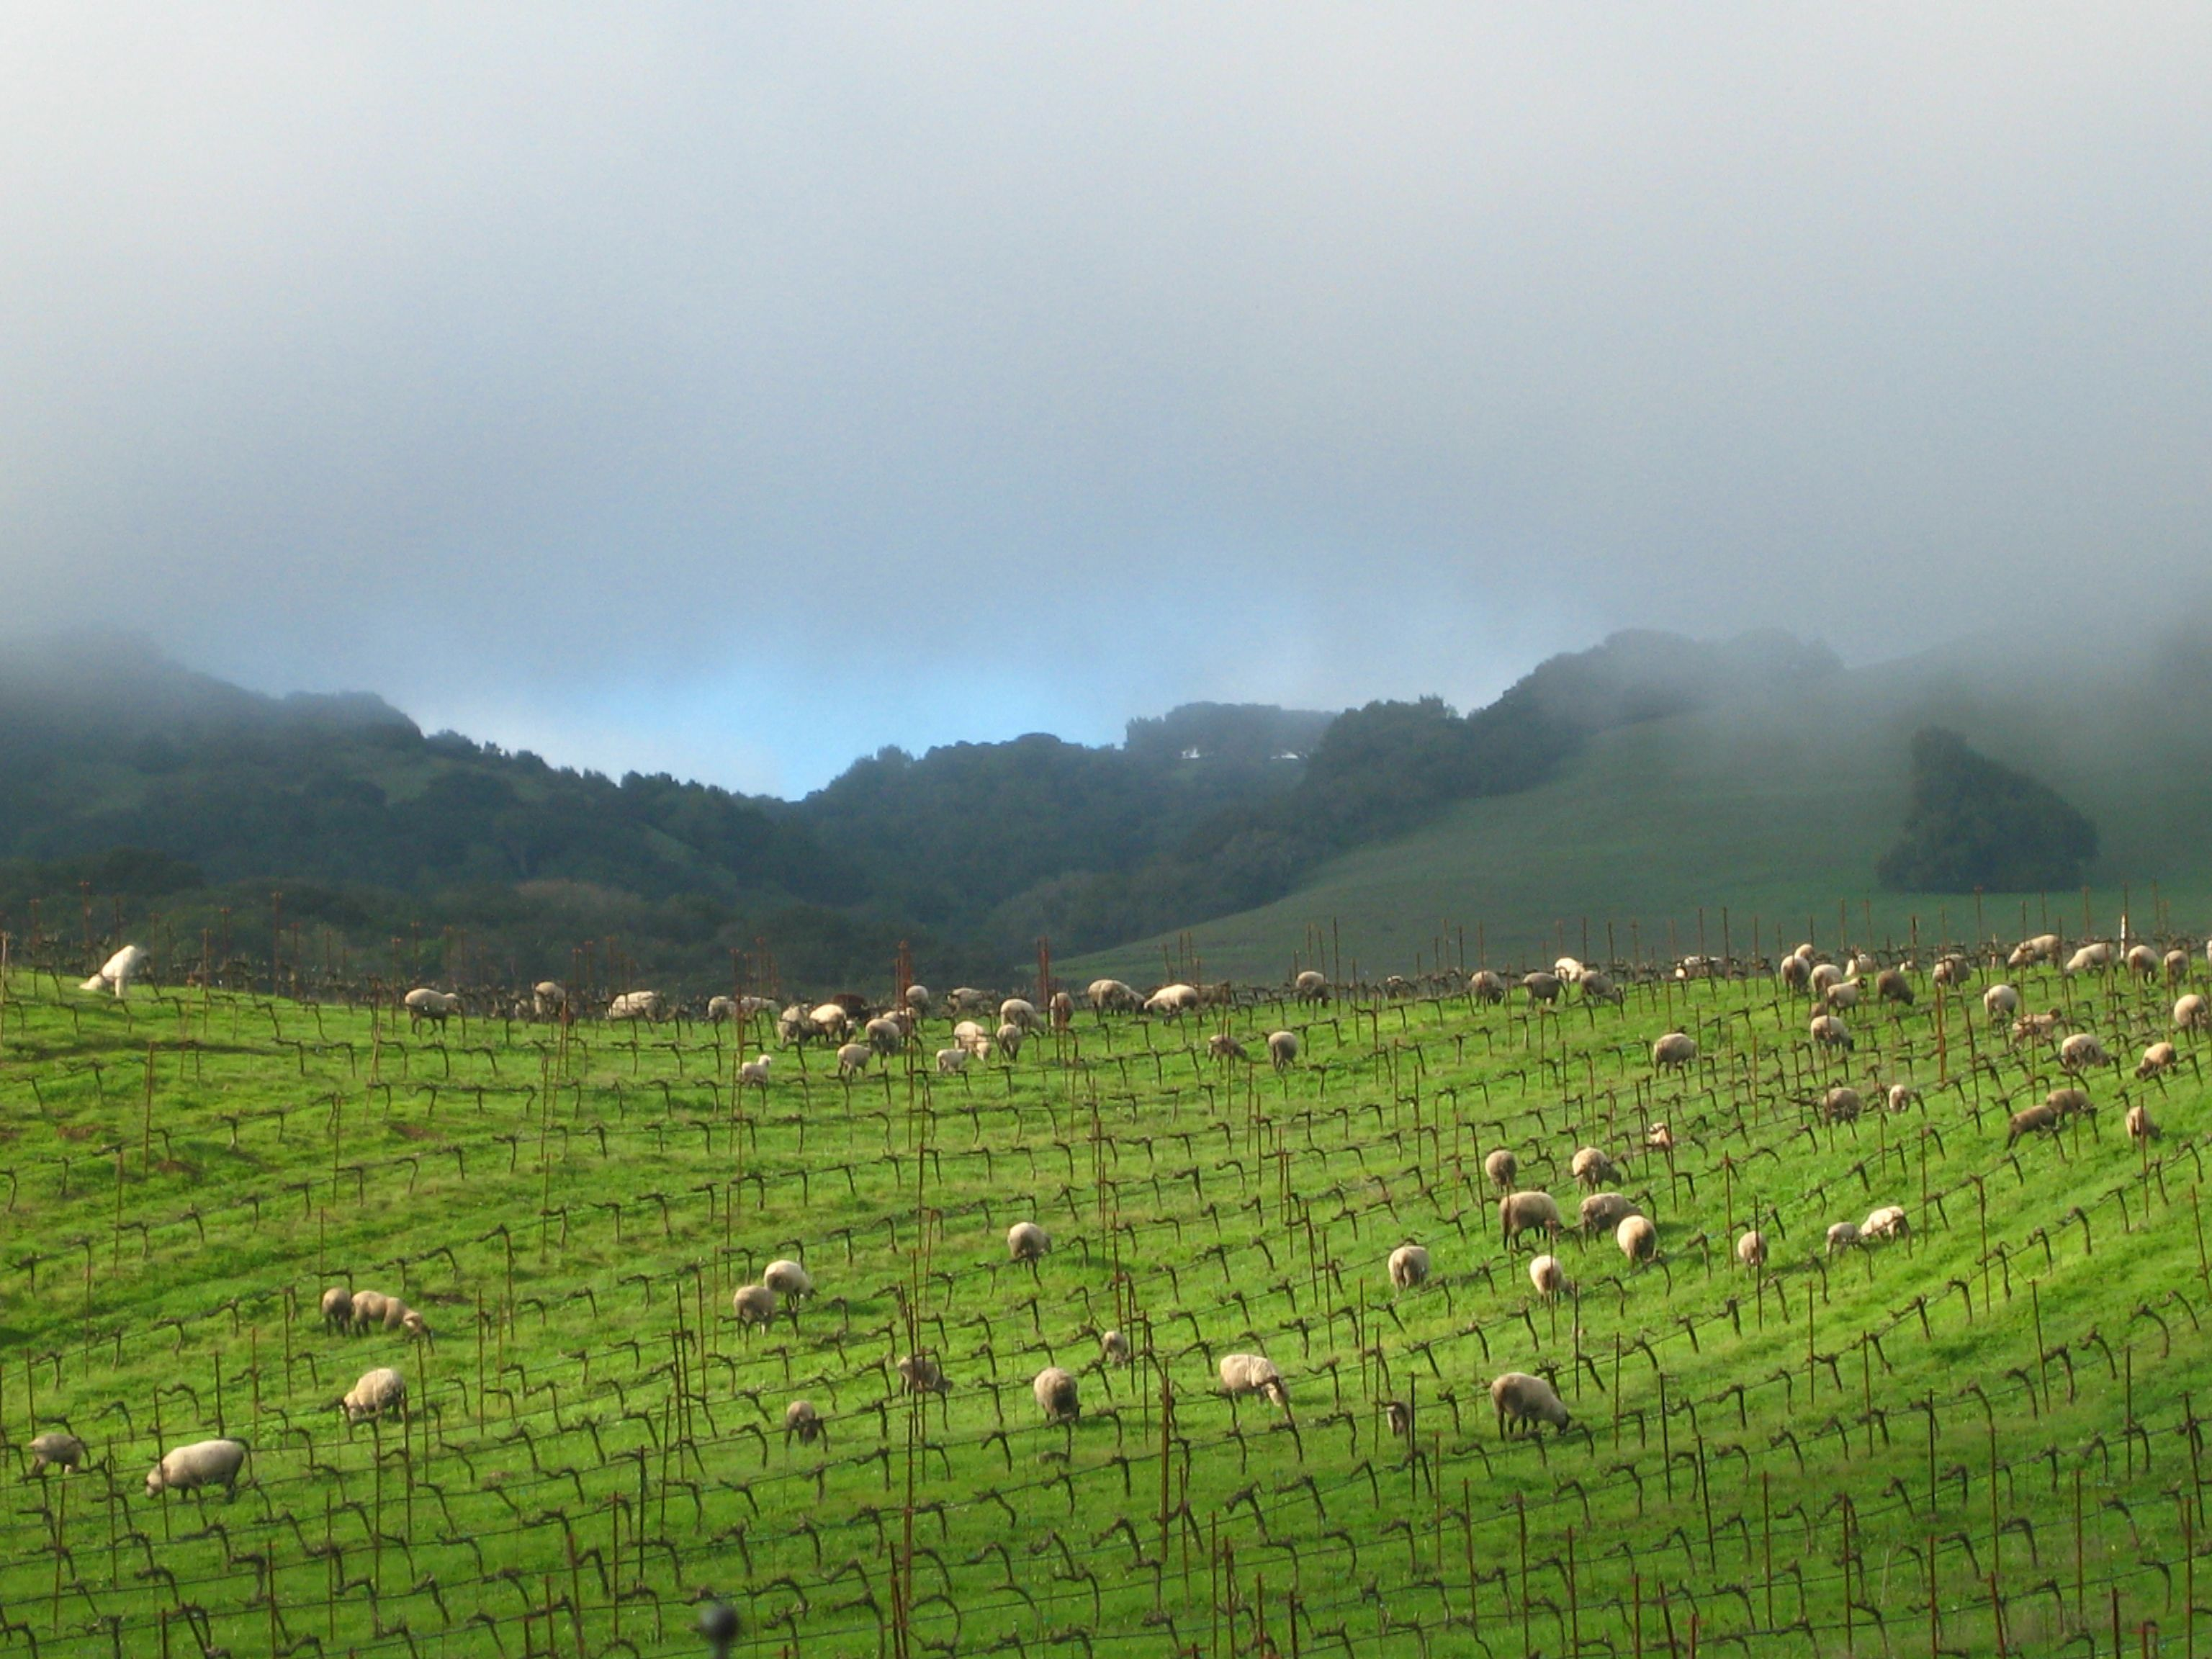 'Wooly weeders' keep grasses and weeds low in spring vineyards - a green alternative to gas powered mowers or chemicals.